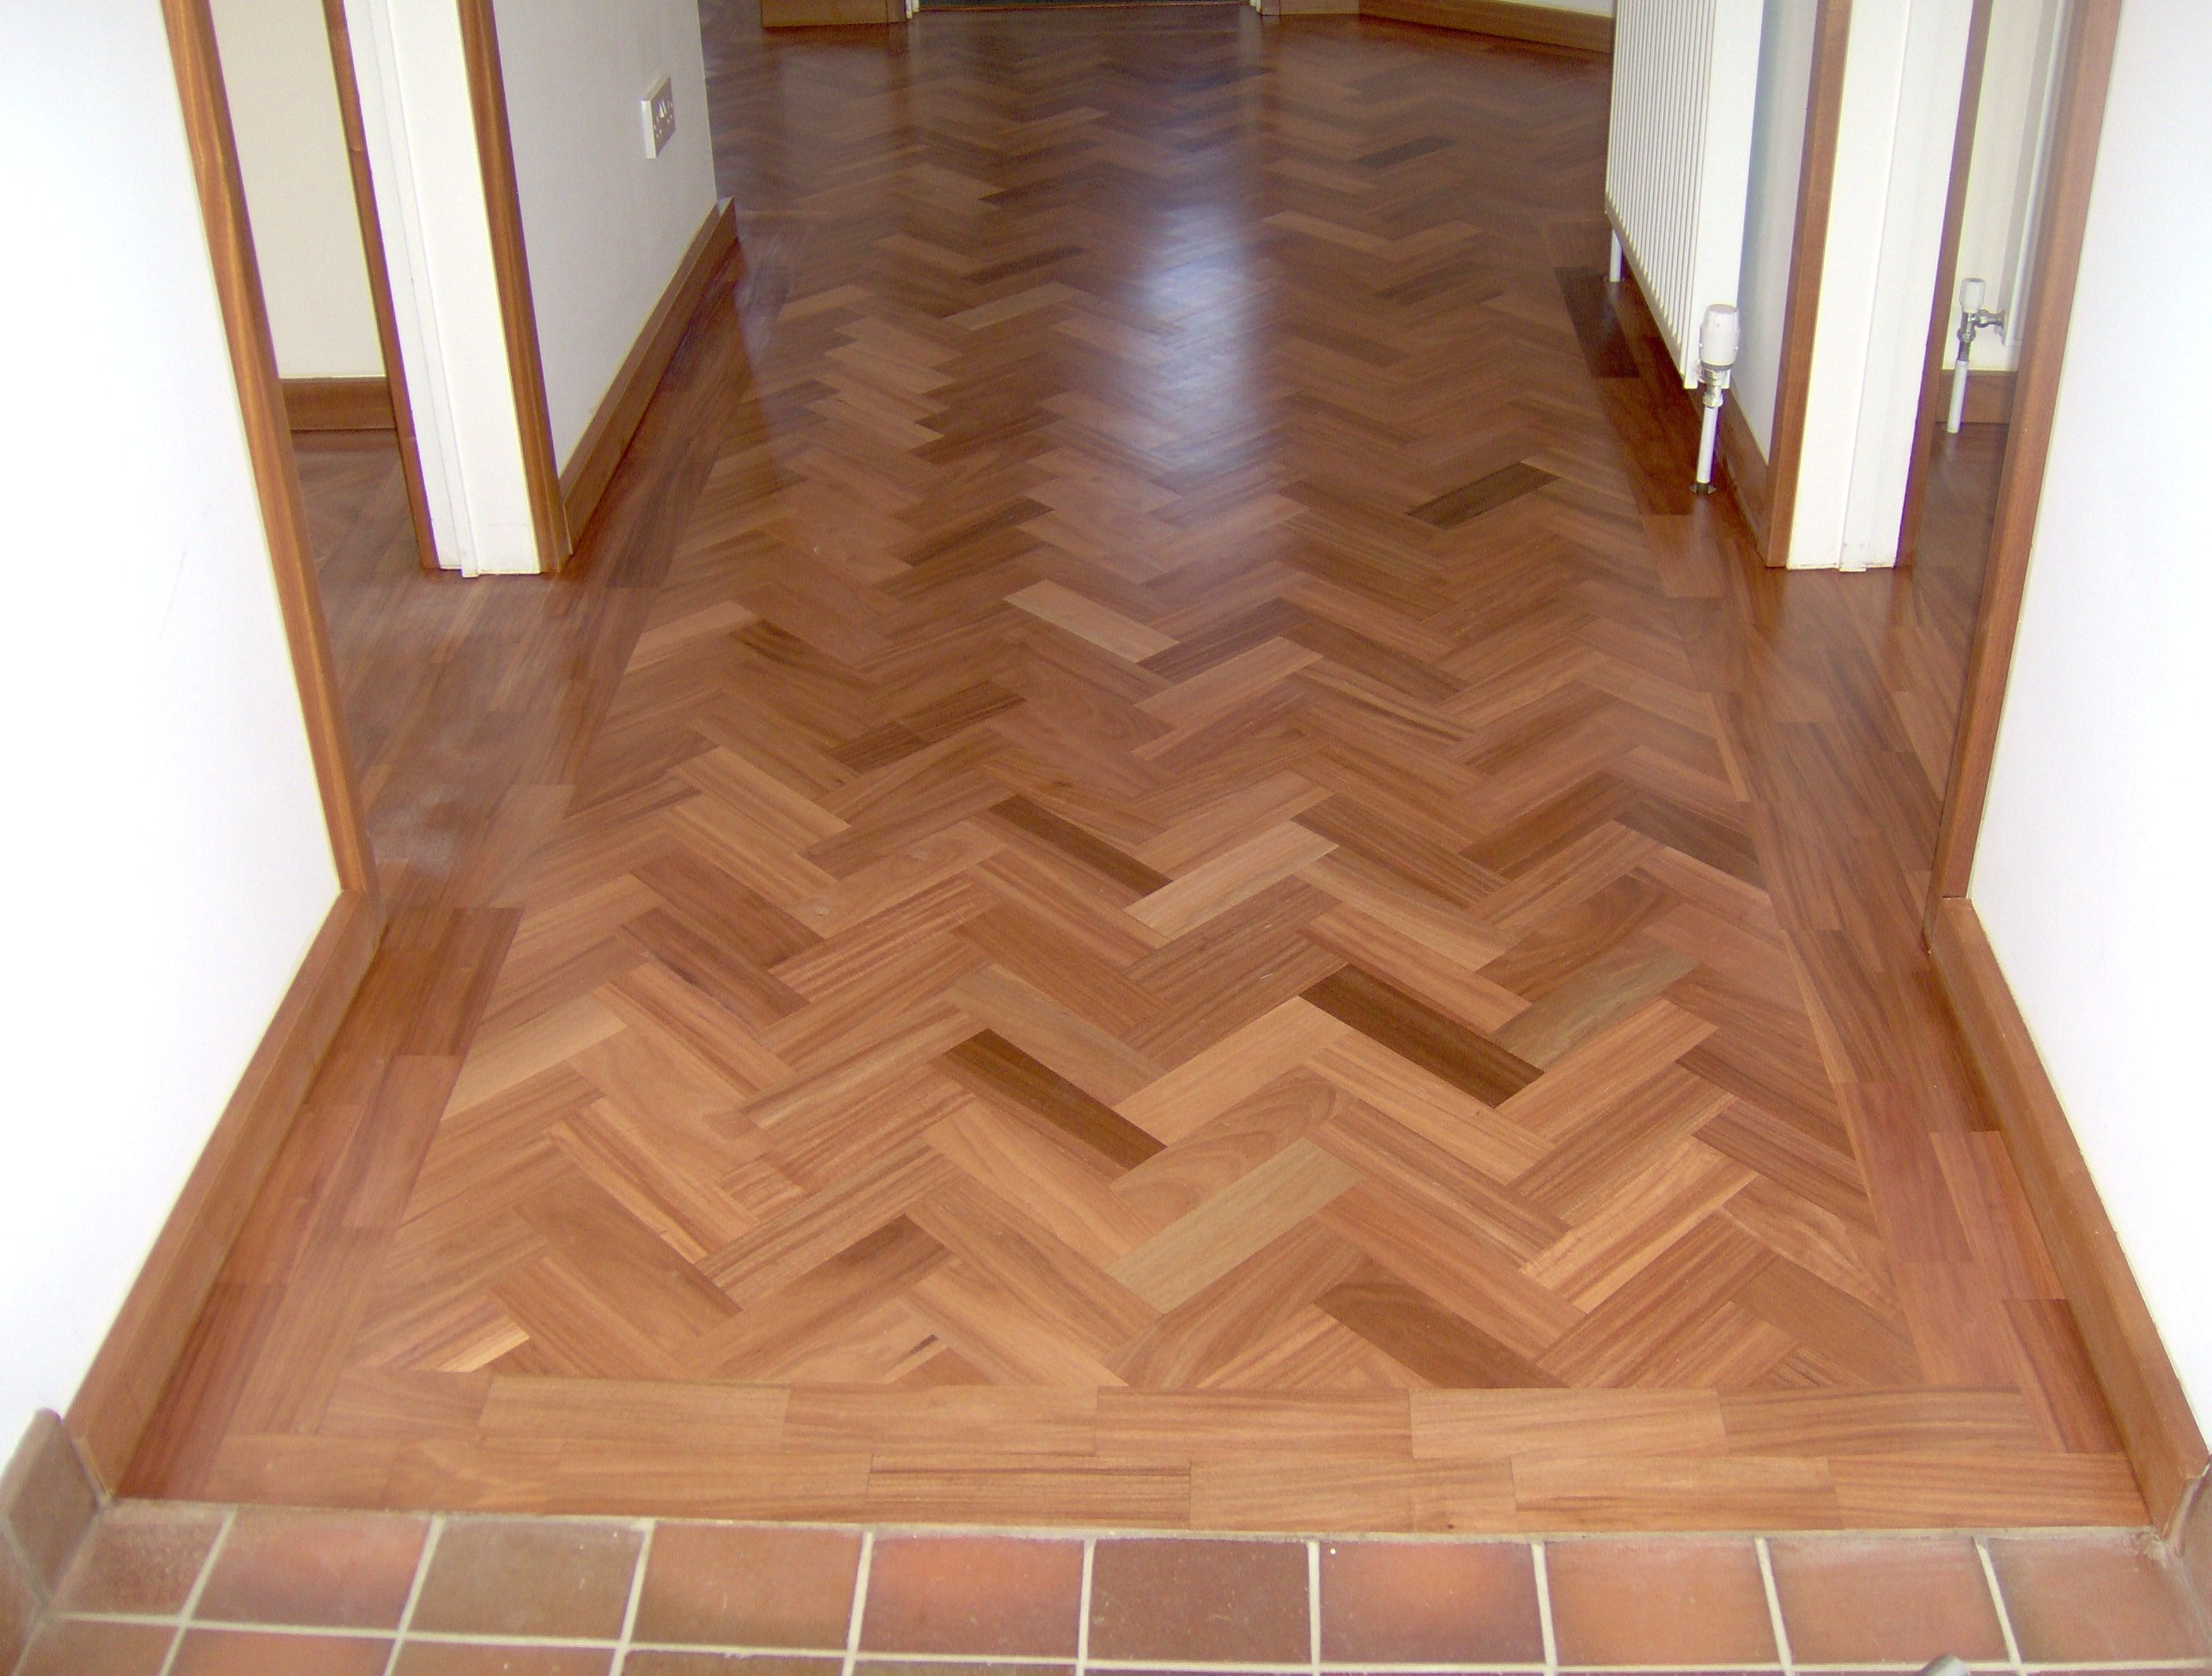 hardwood floor examples of gorgeous reformed home with parkay floor remarkable white wall and with hallway and bedrooms parquet flooring wooden flooring parkay flooring floors floor design